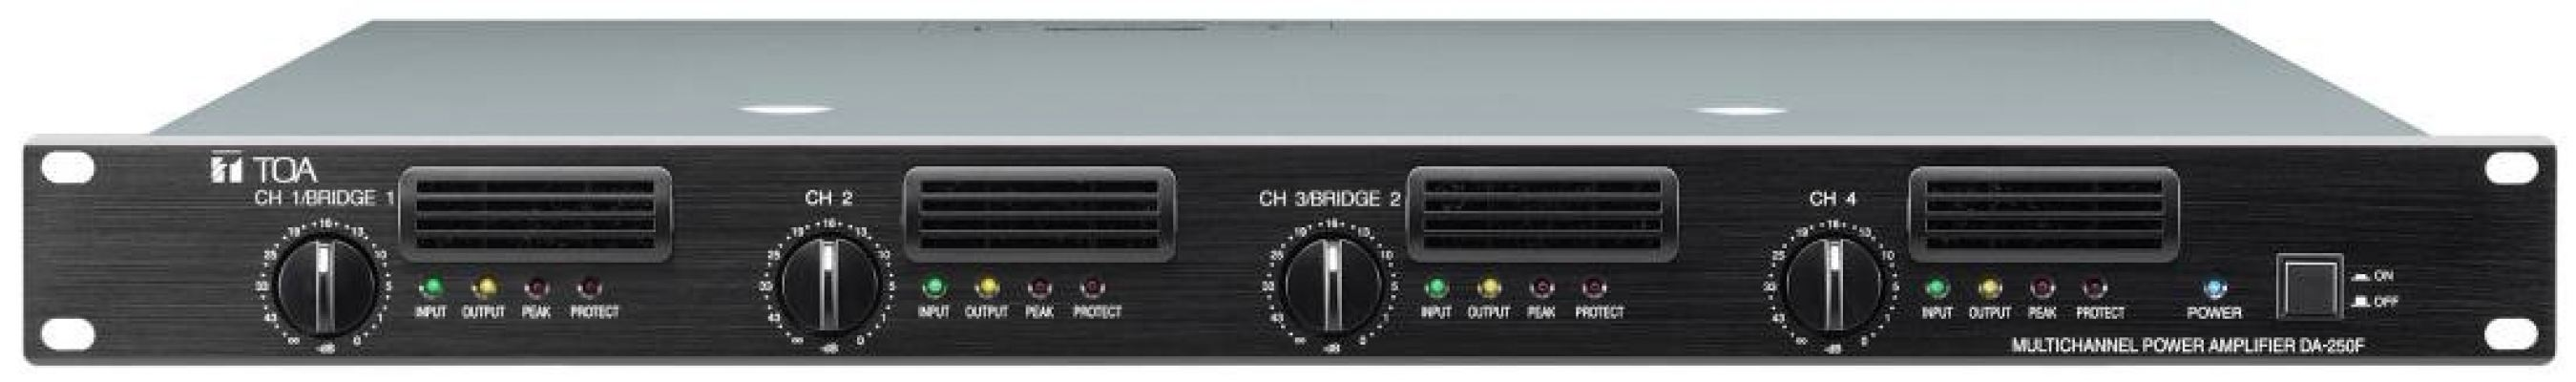 DA-250F.Multichannel Power Amplifier